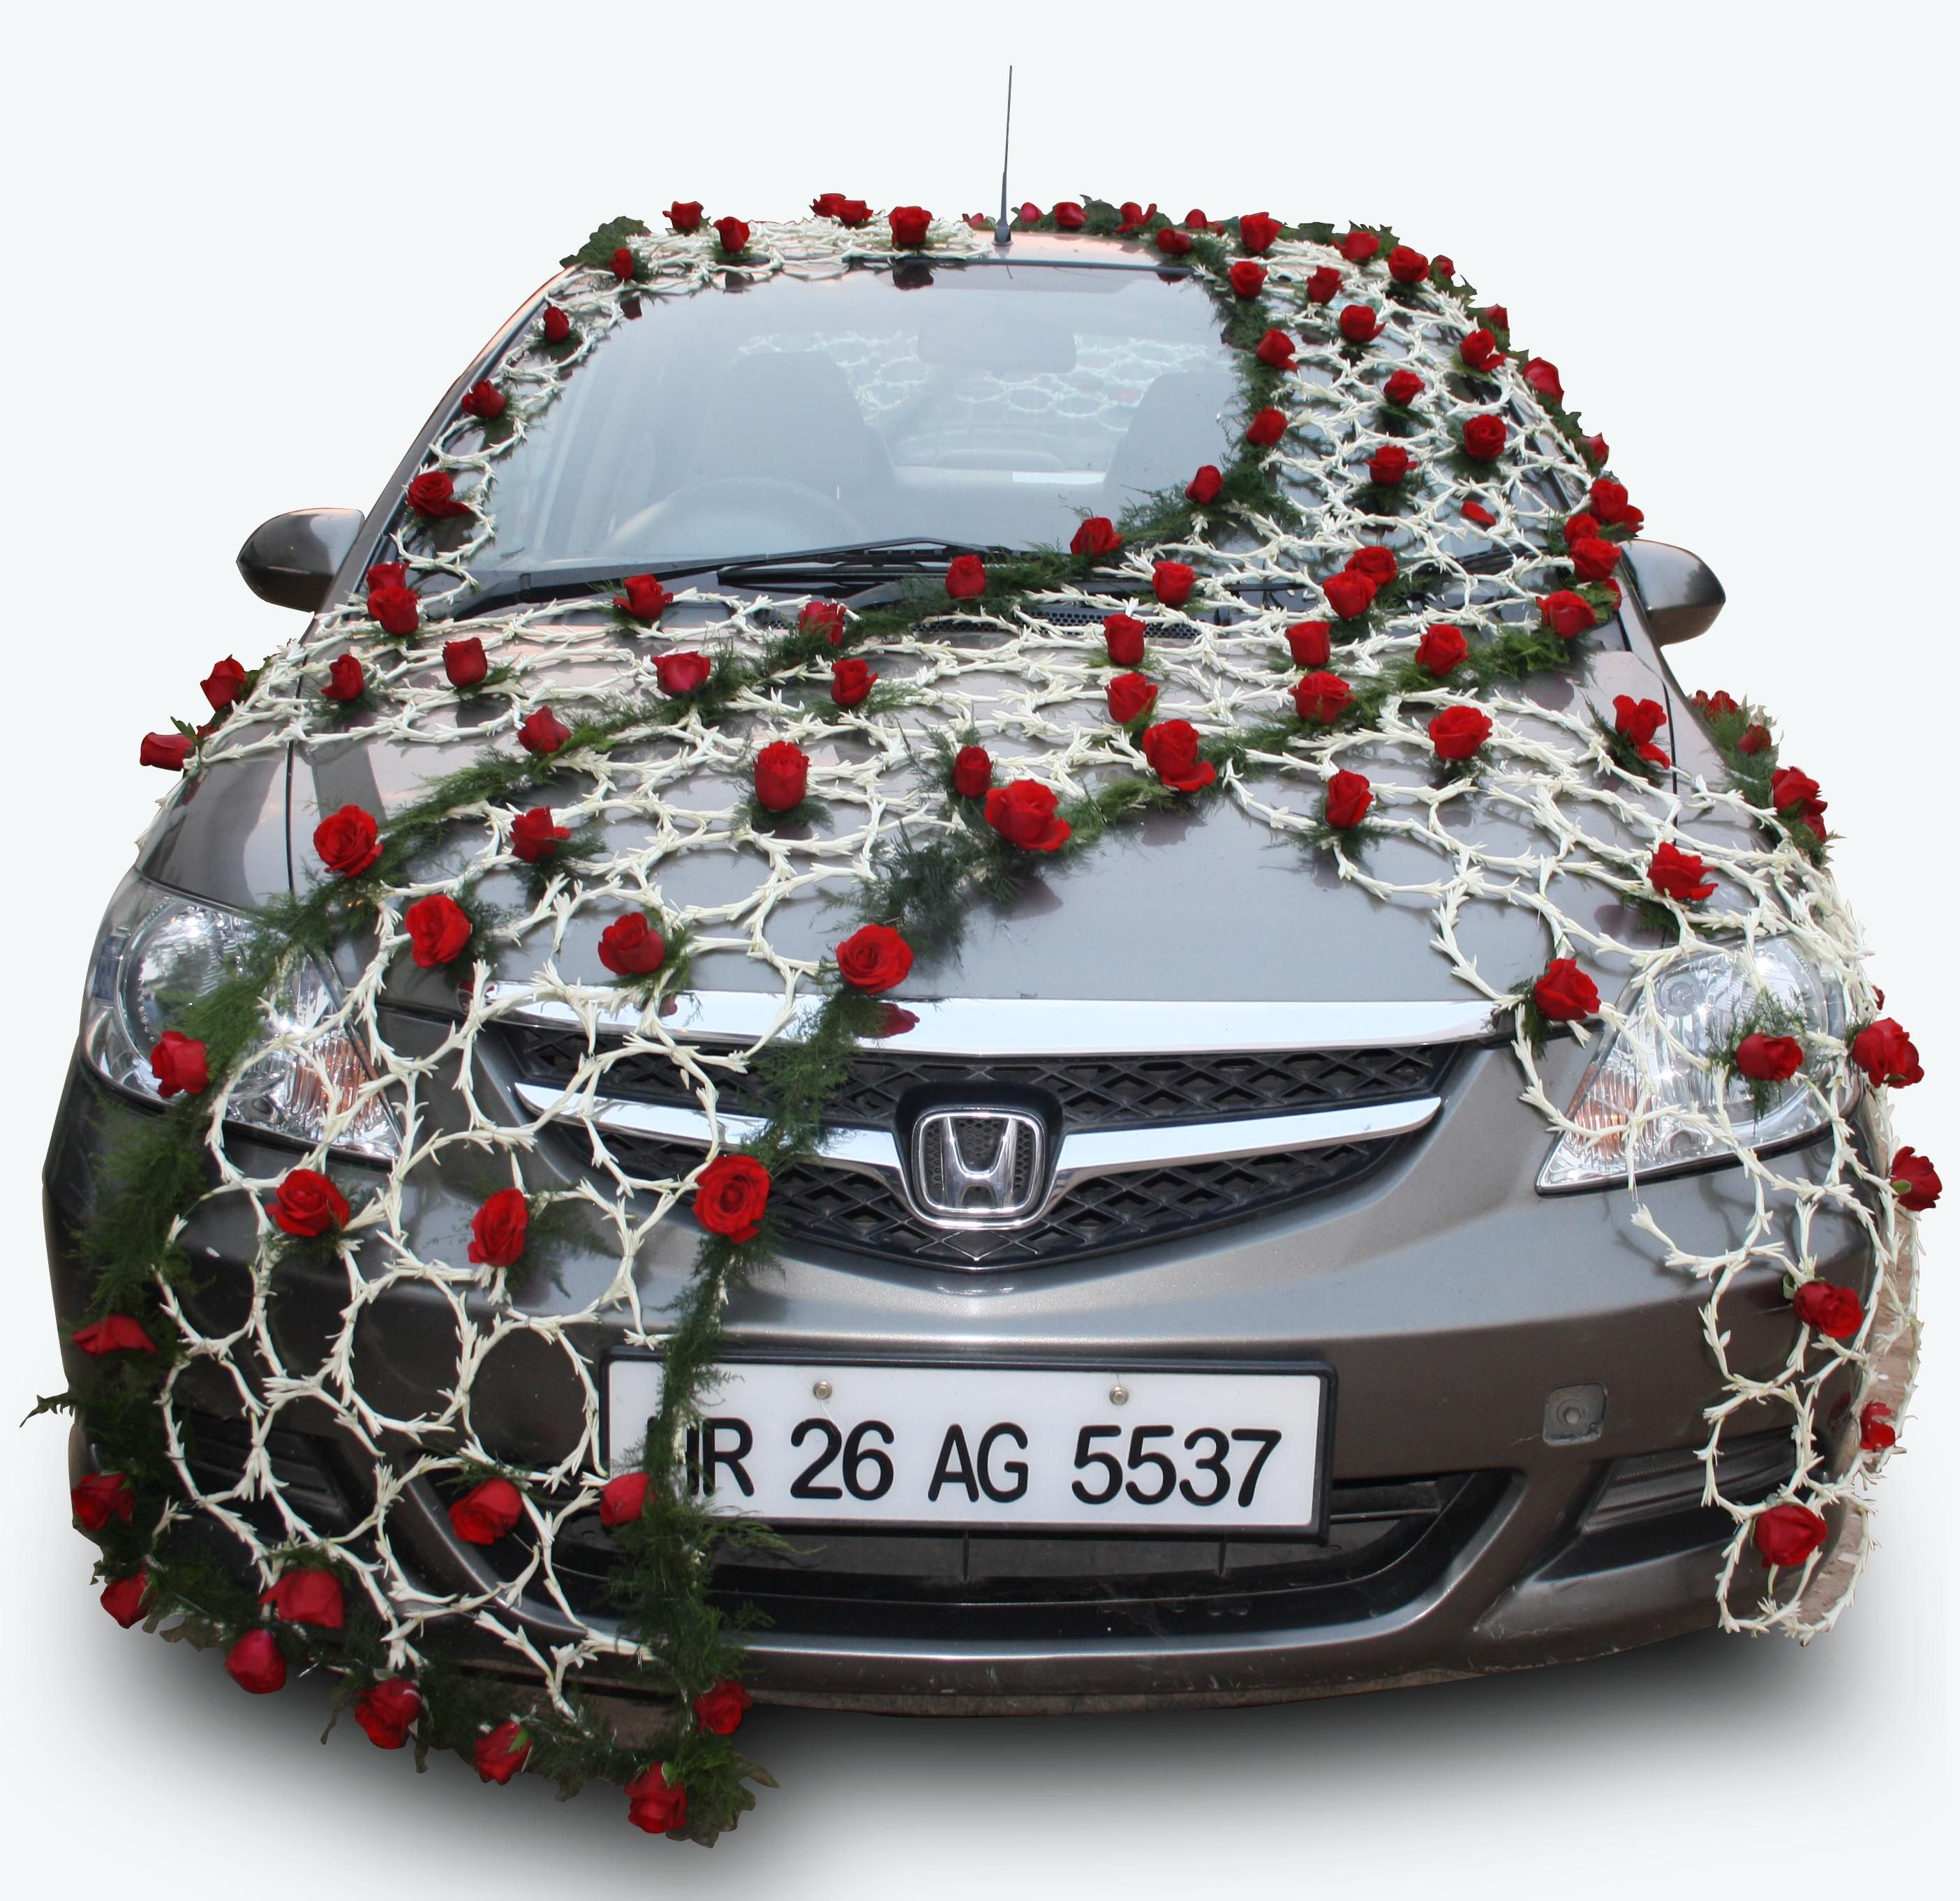 india products | Elegant Car Decorations,Indian Gifts ...